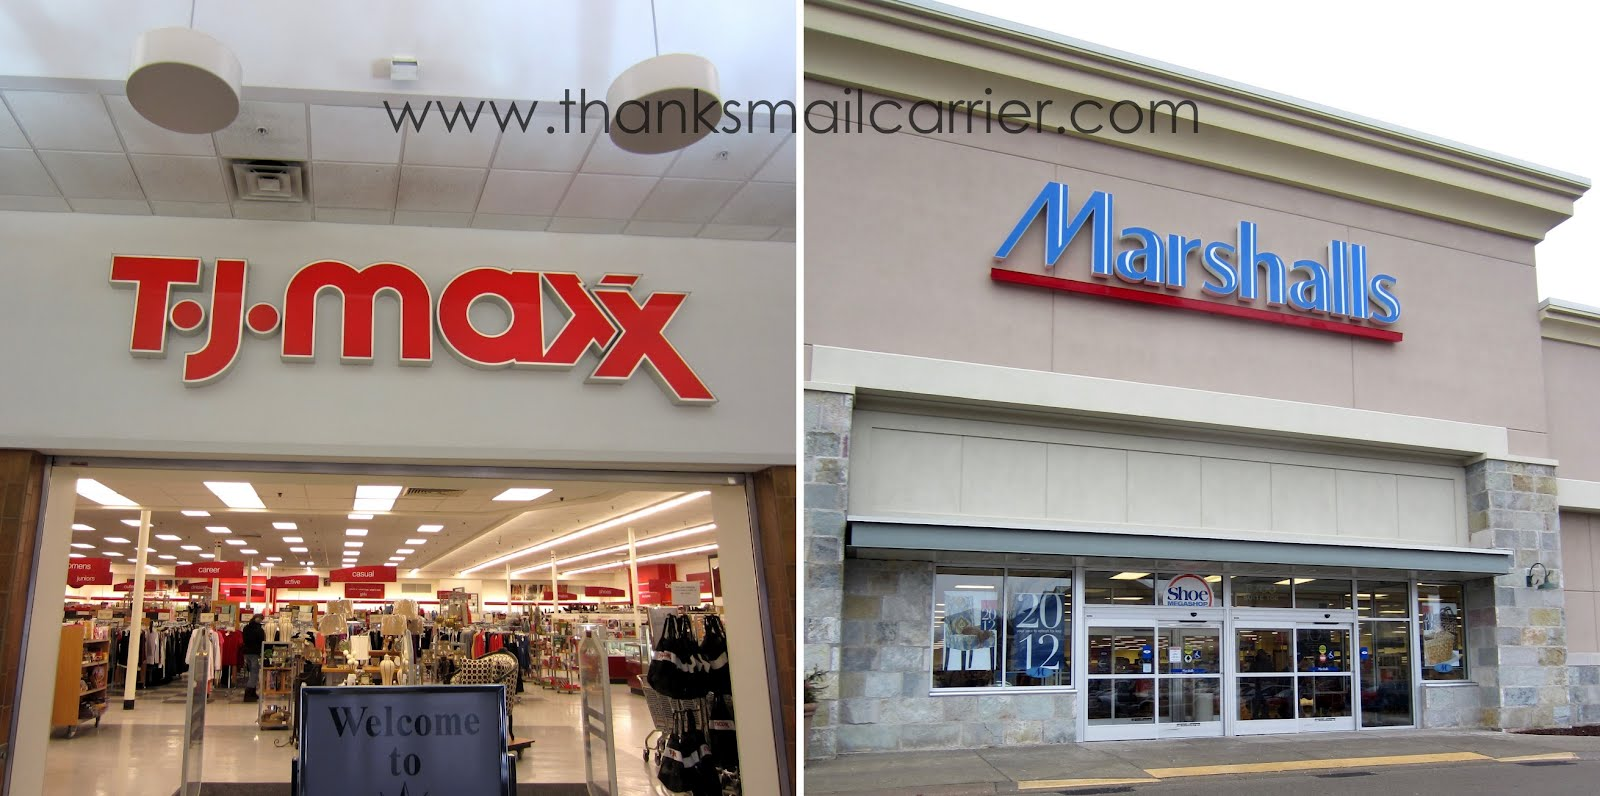 Thanks Mail Carrier Refresh For Less With T J Maxx And Marshalls Review